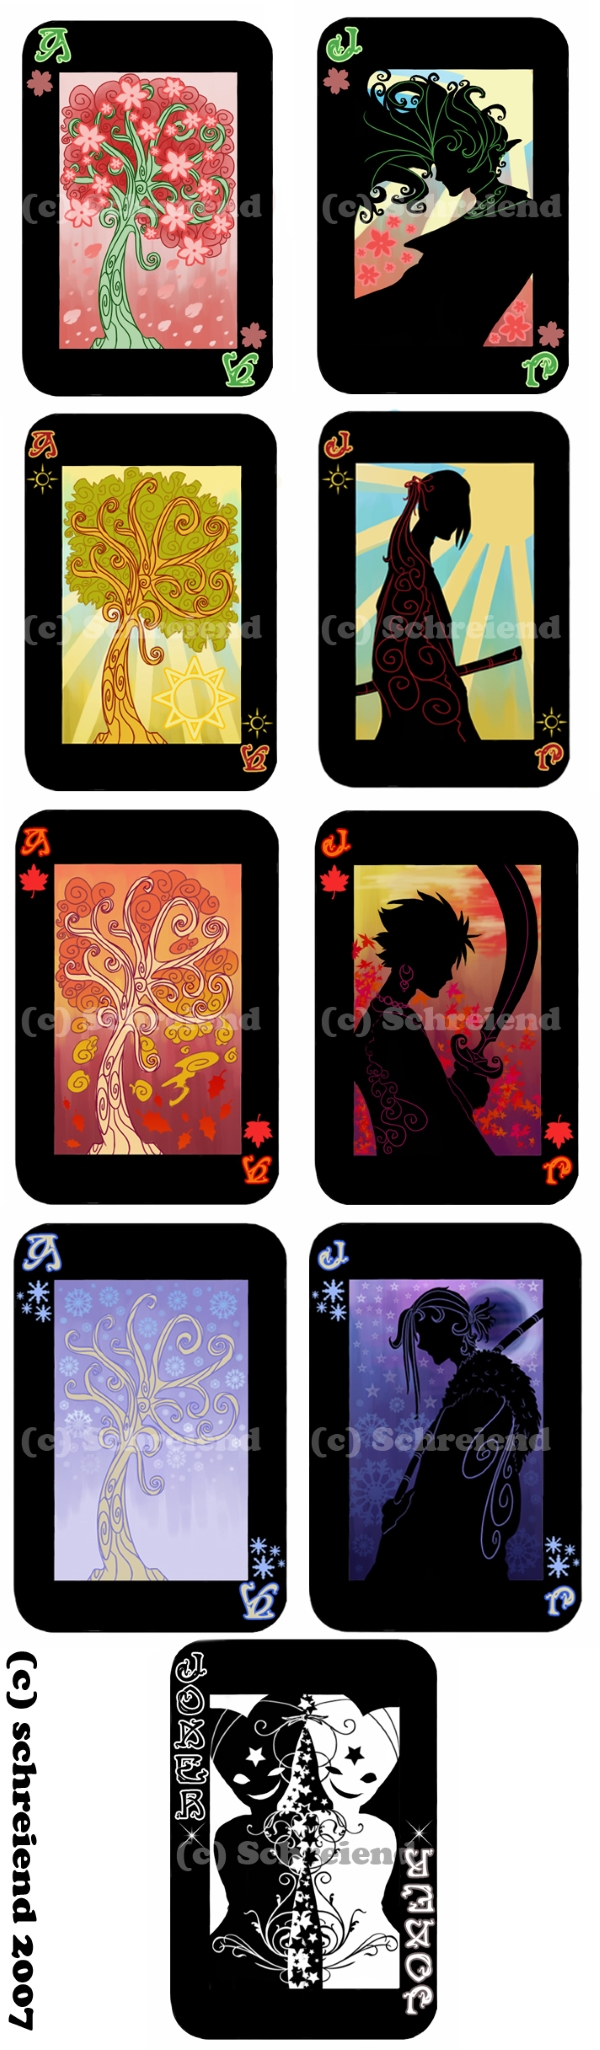 Seasons-Playing-Cards-by-Schreiend-Ace-Jack-Joker